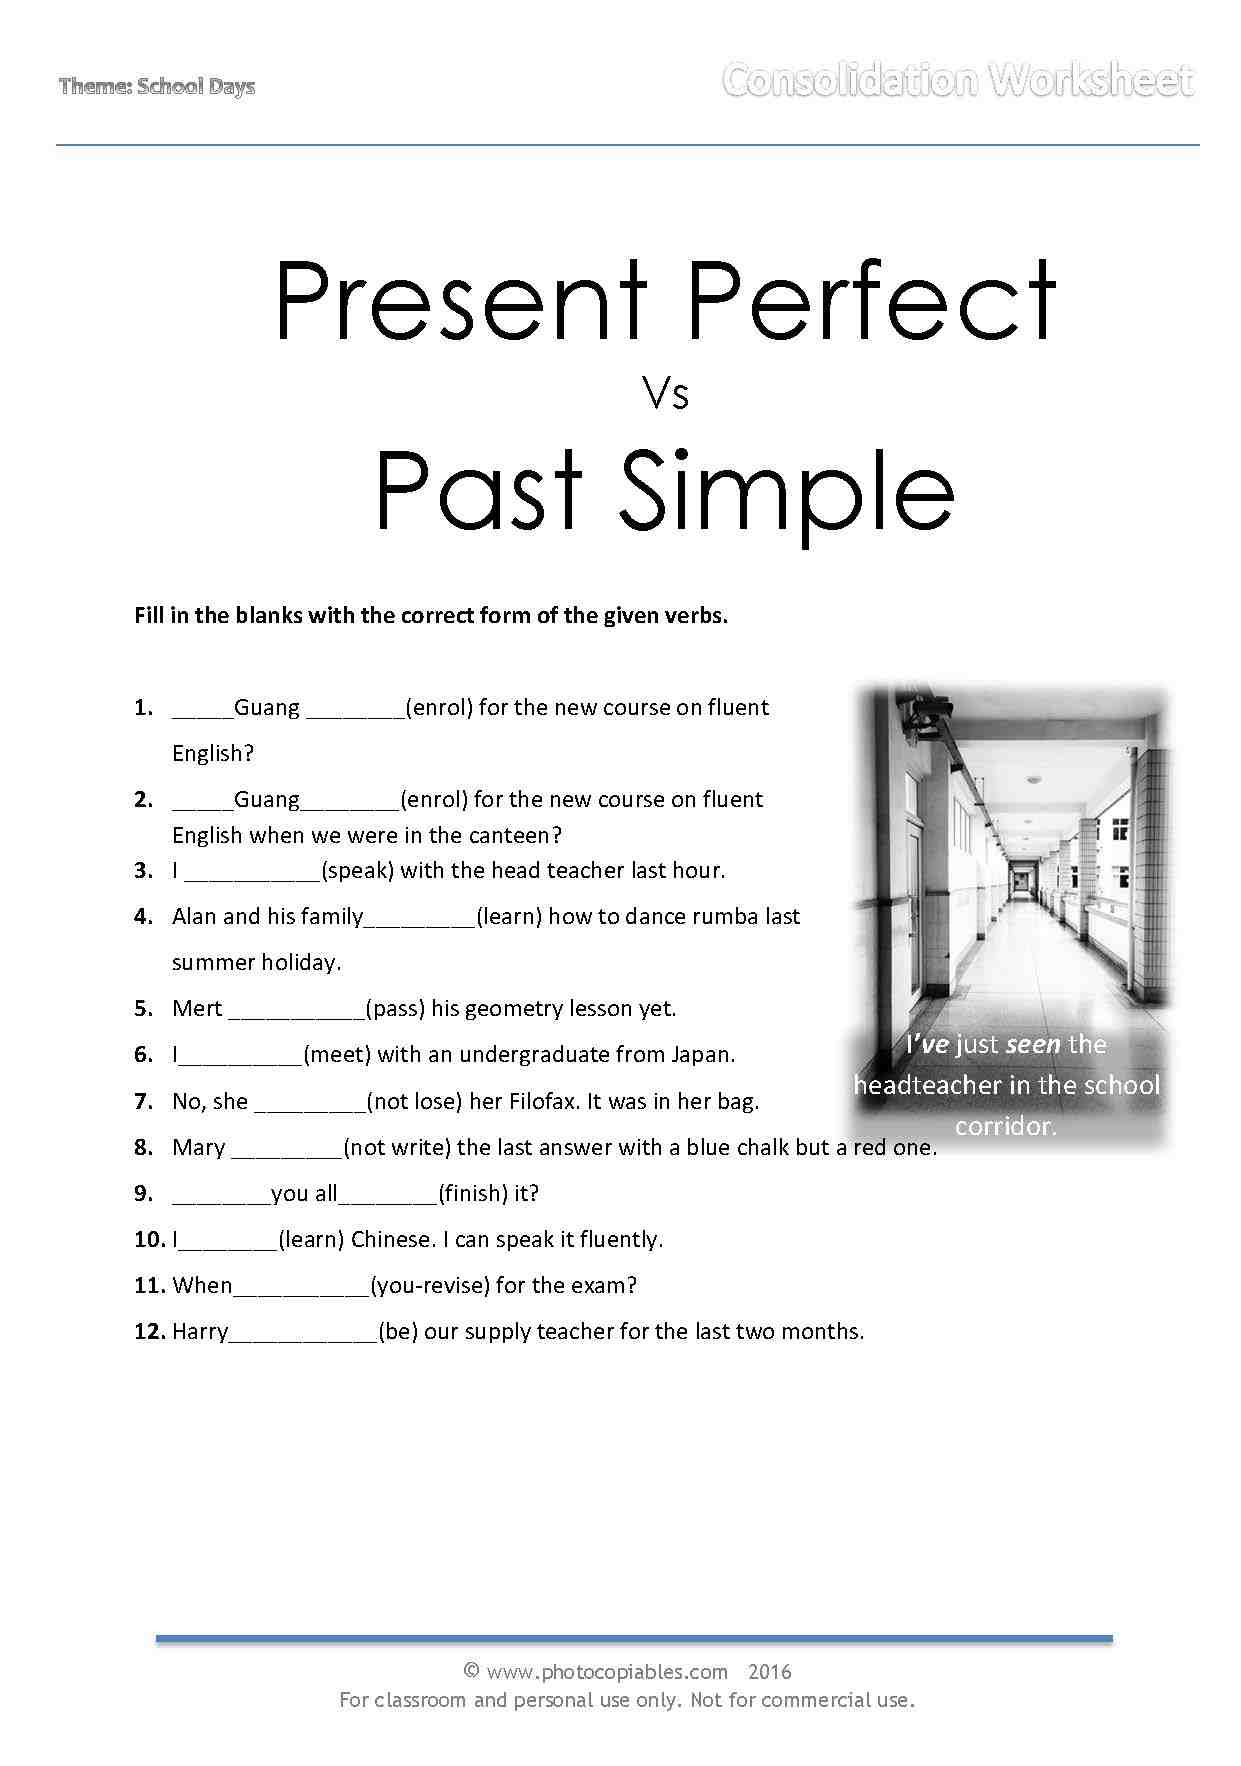 worksheet Past Simple Or Present Perfect Worksheet present perfect vs past simple consolidation online exercise exercise